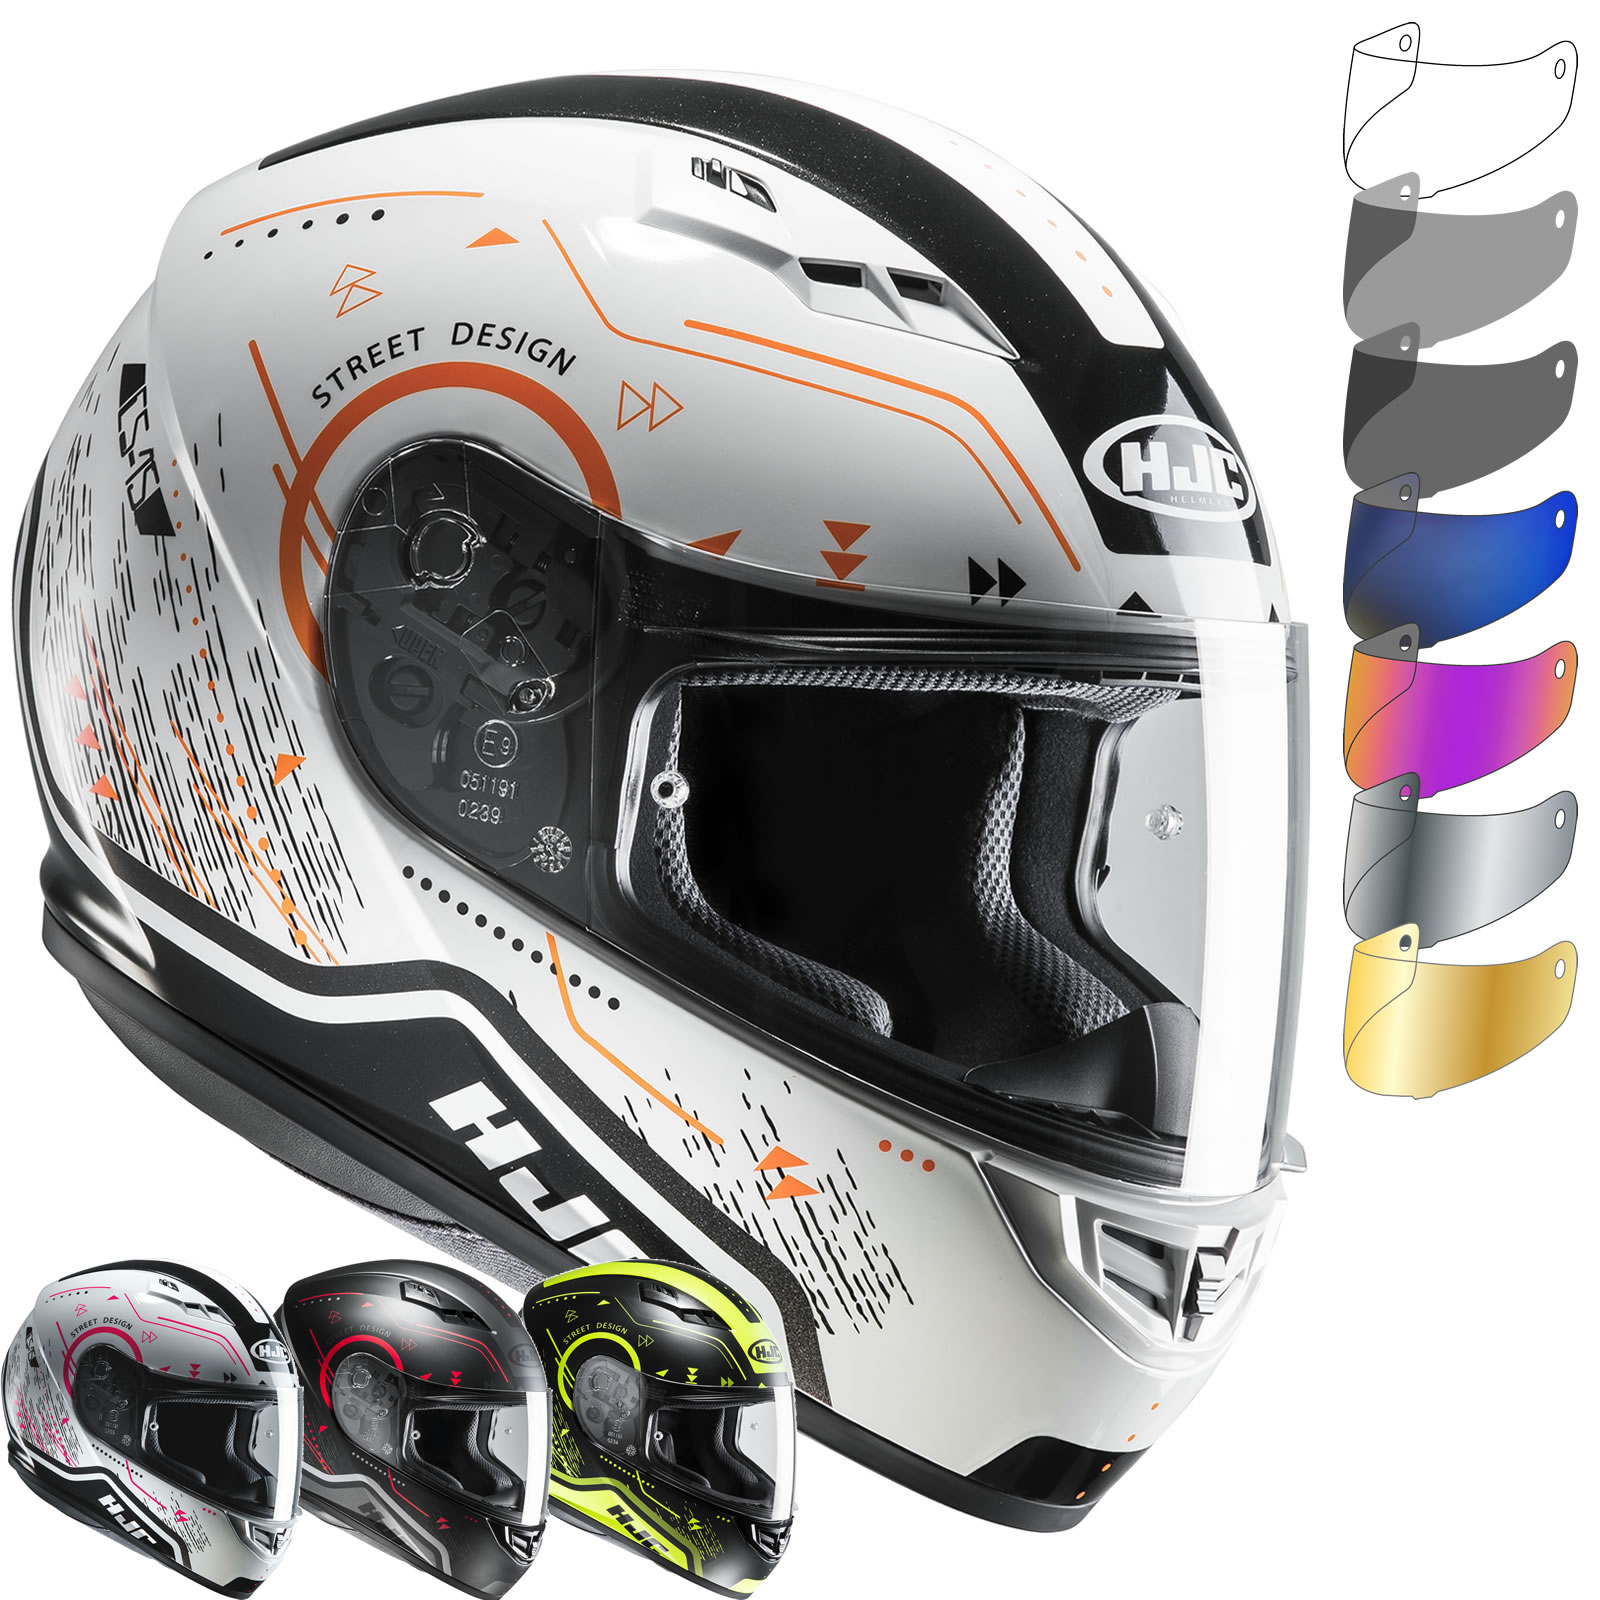 HJC CS 15 Safa Motorcycle Helmet & Visor New Arrivals Ghostbikes